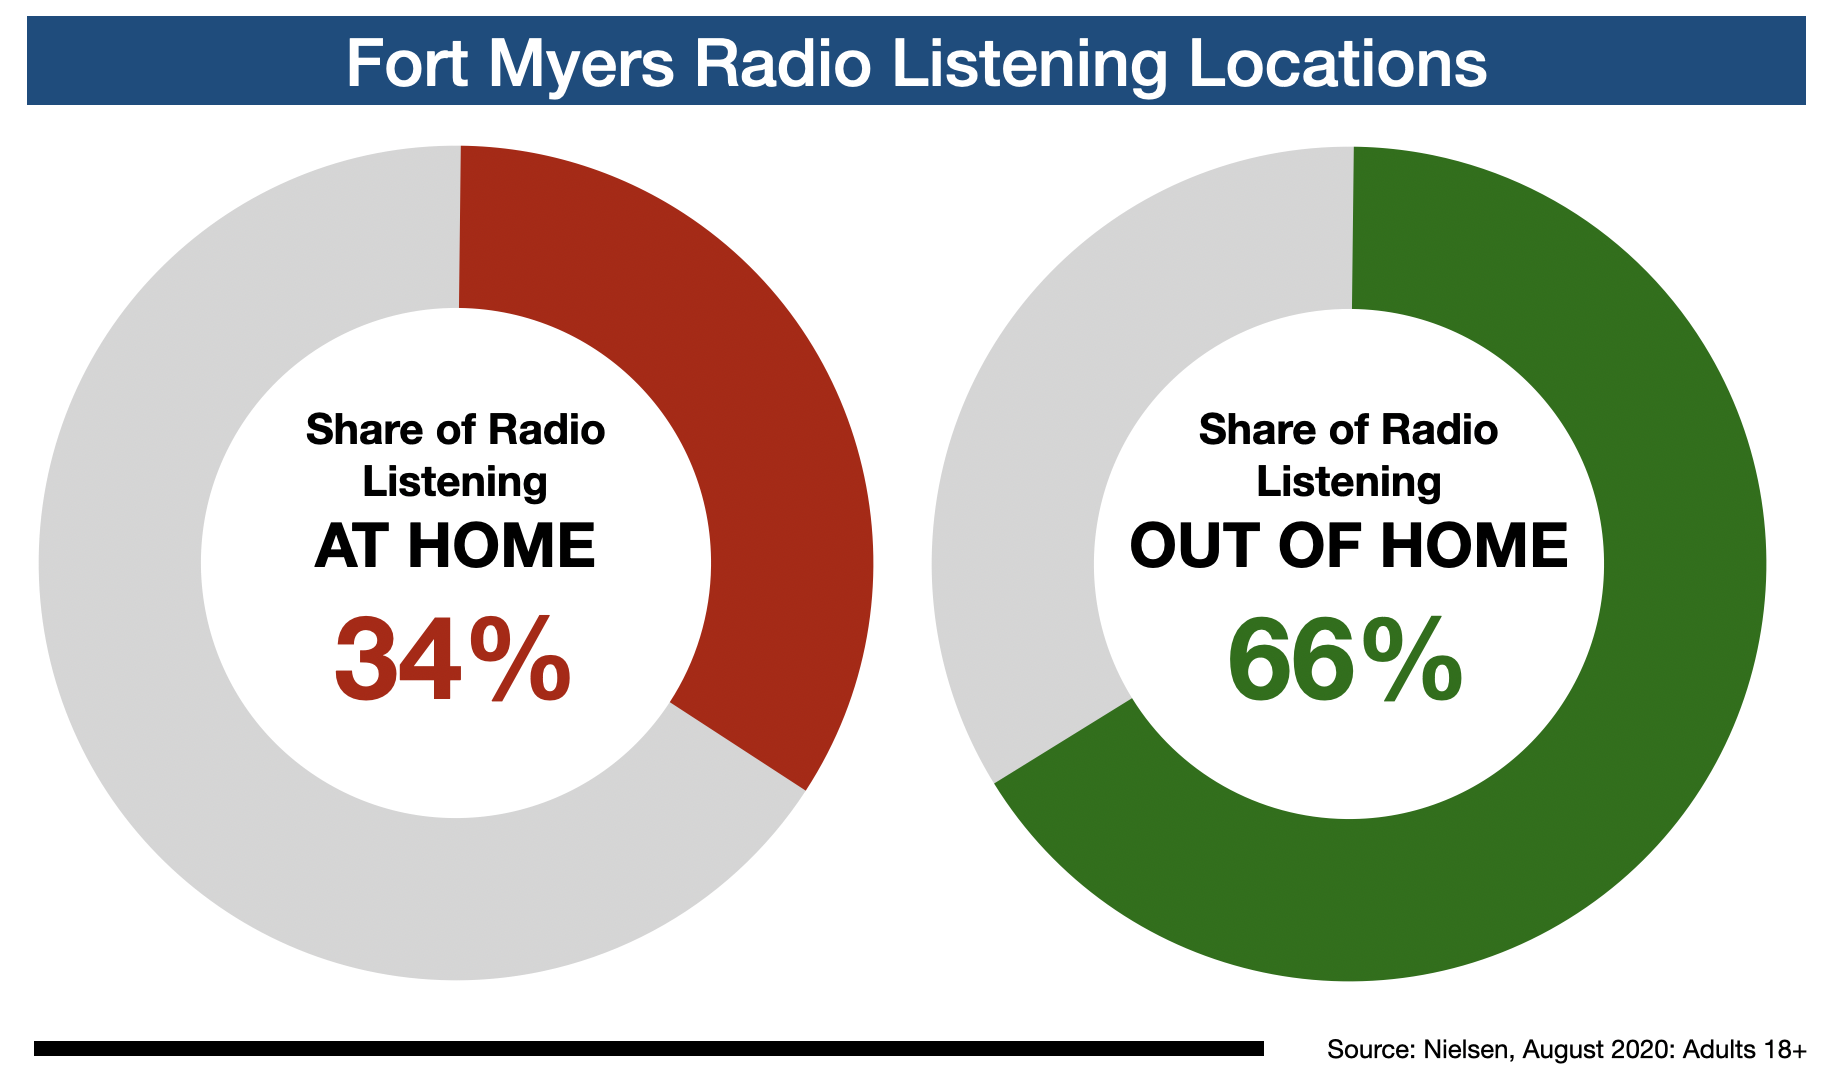 Fort Myers Radio: Listening Locations